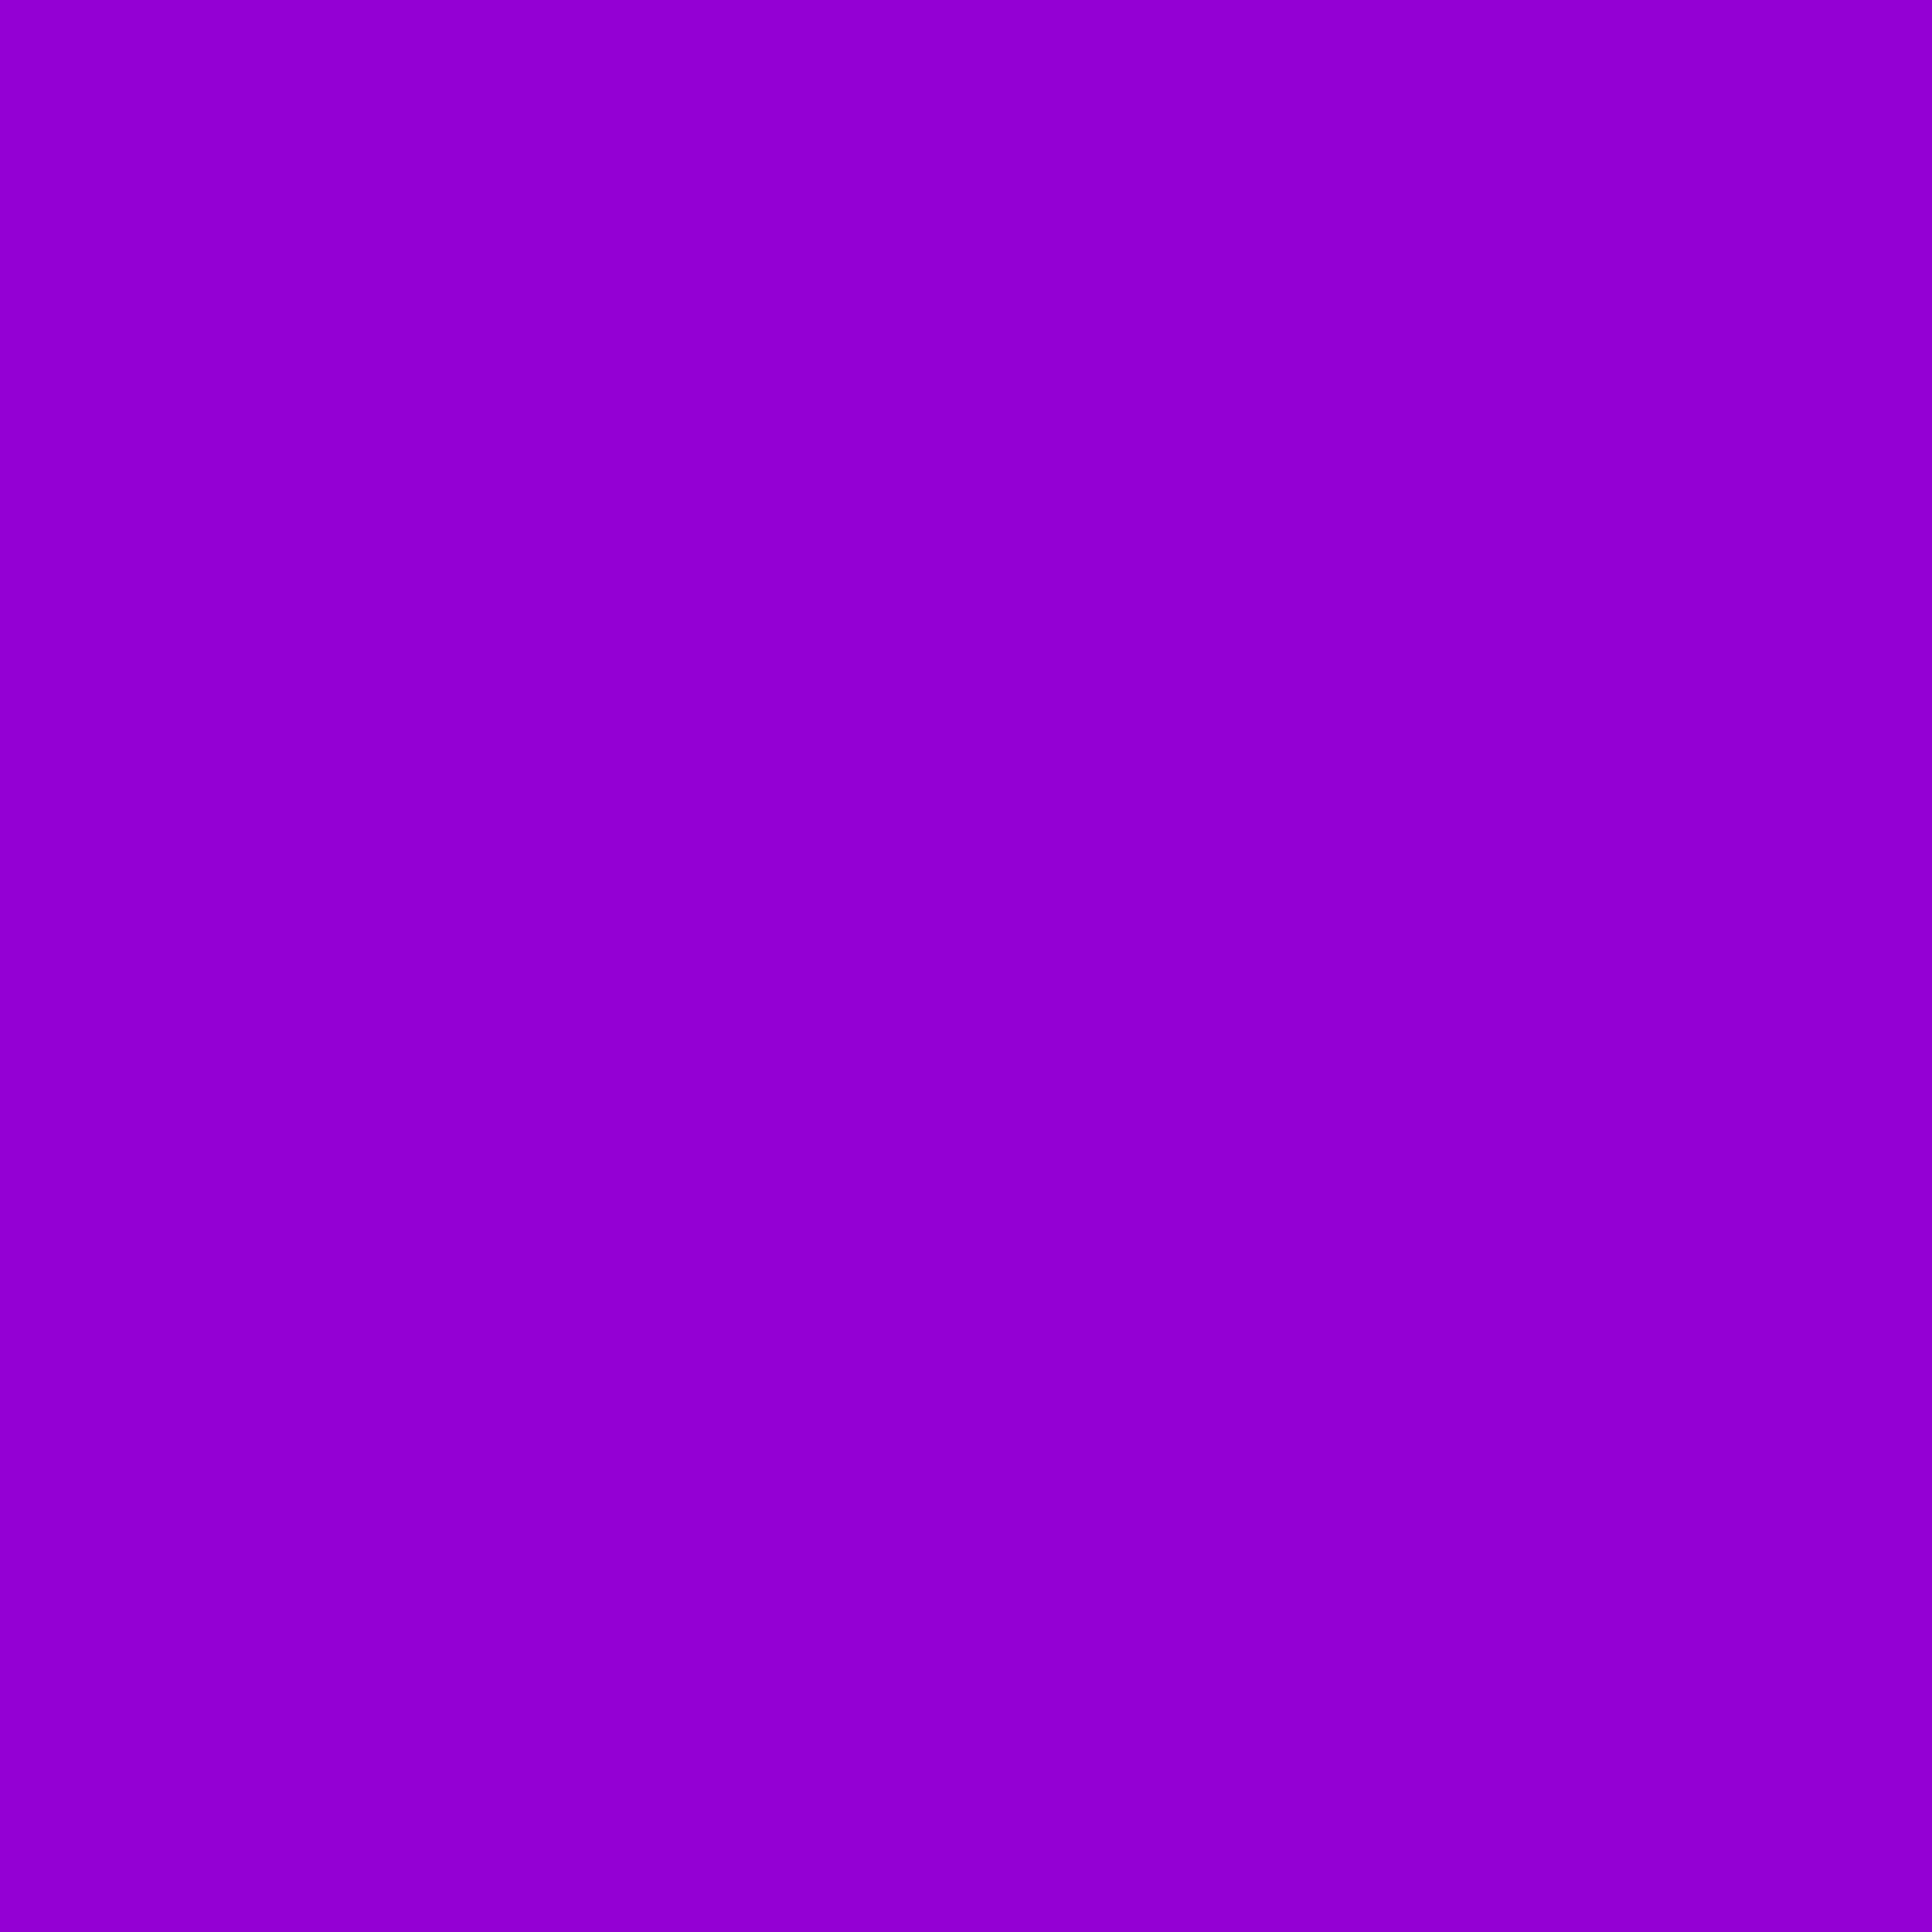 2048x2048 Dark Violet Solid Color Background